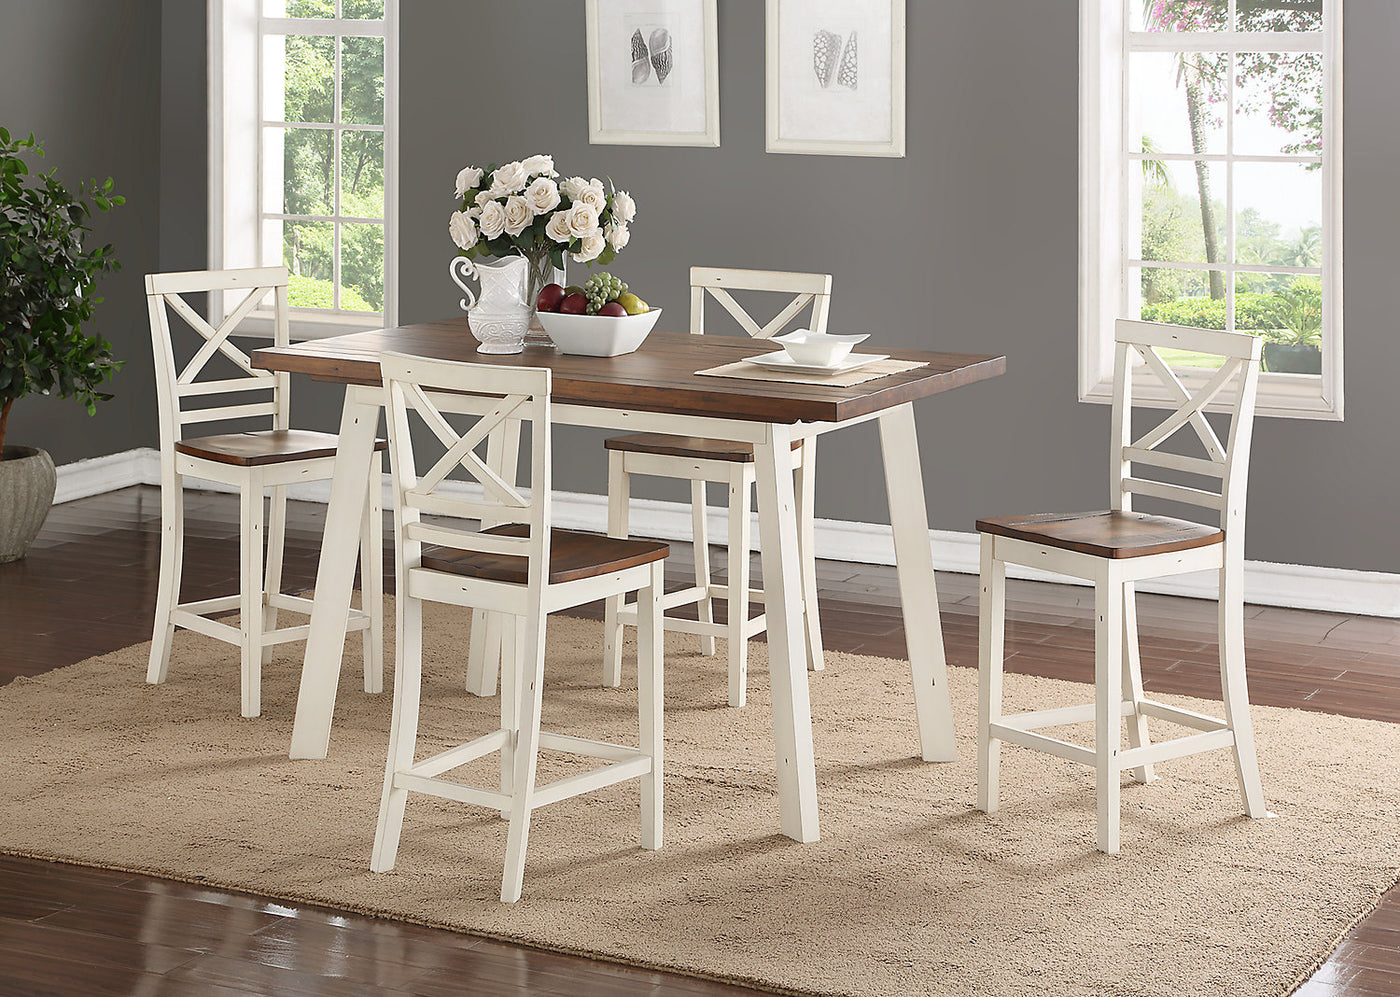 Amelia Counter-Height Dining Table – White